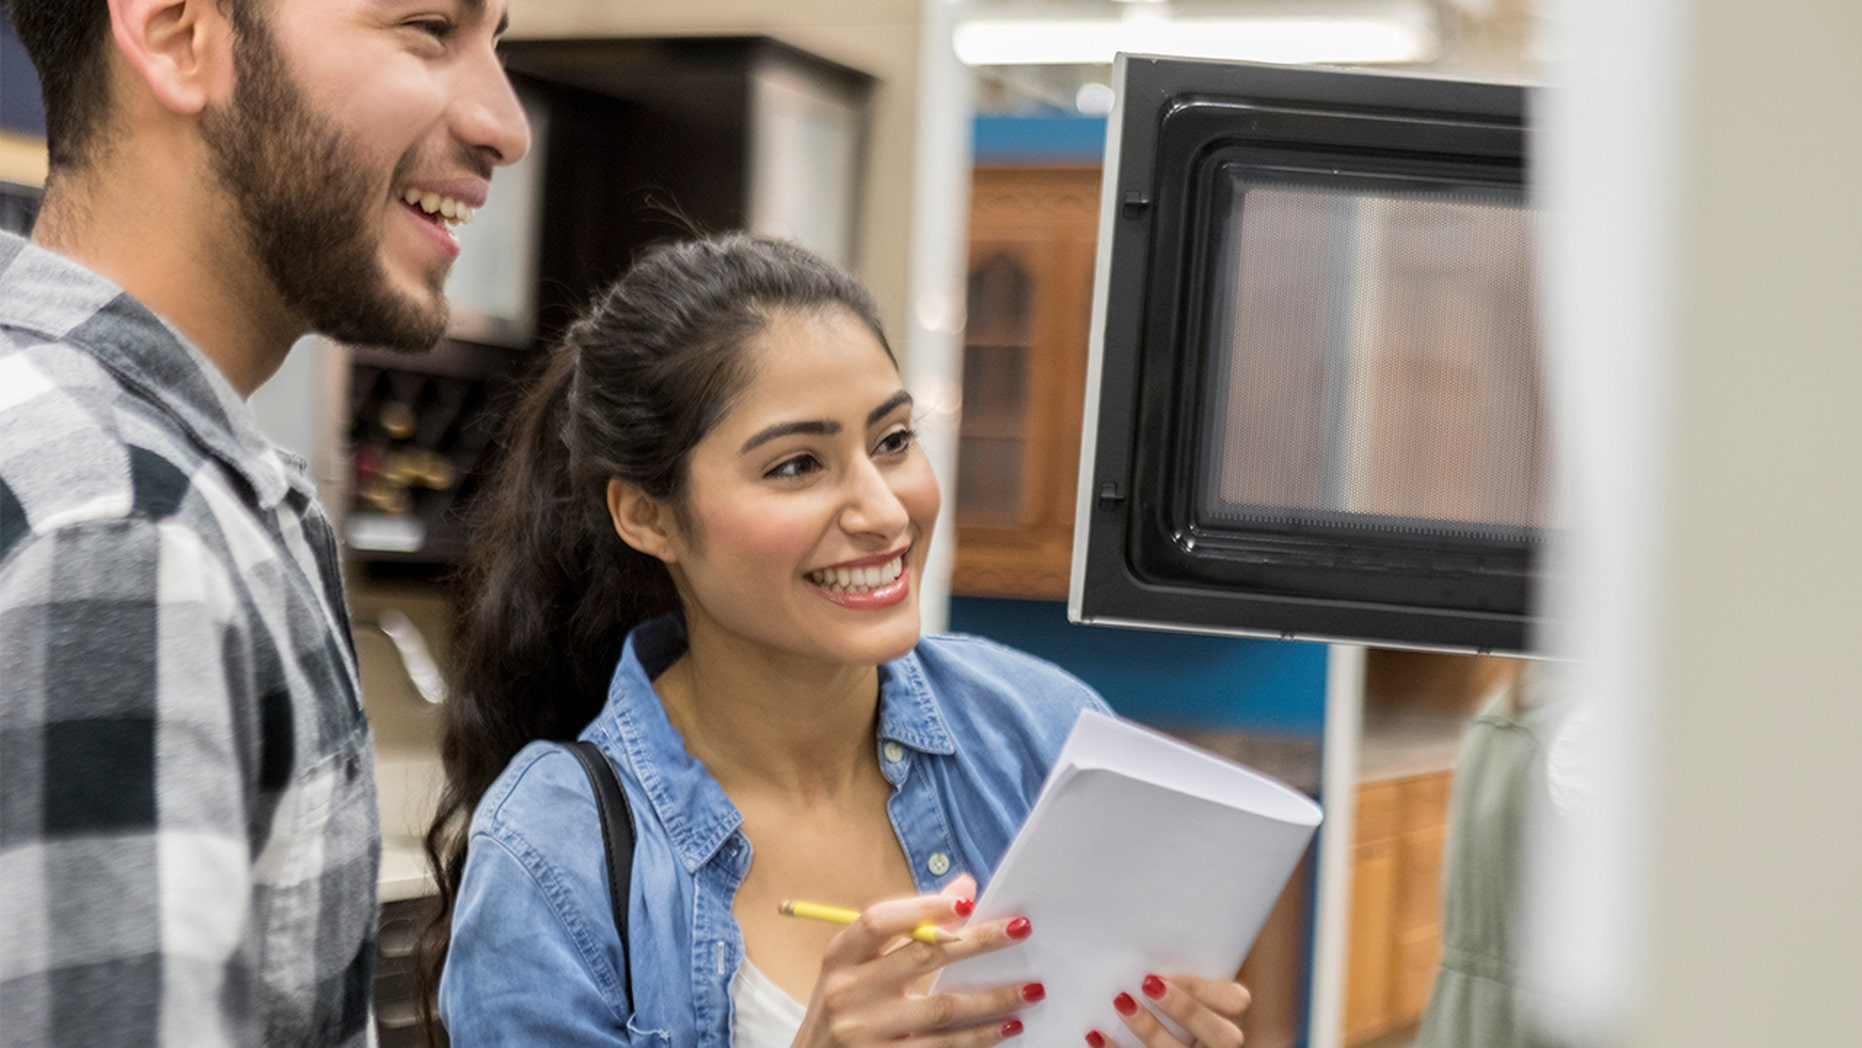 Score the best deals on home appliances and other essentials by following these tips.